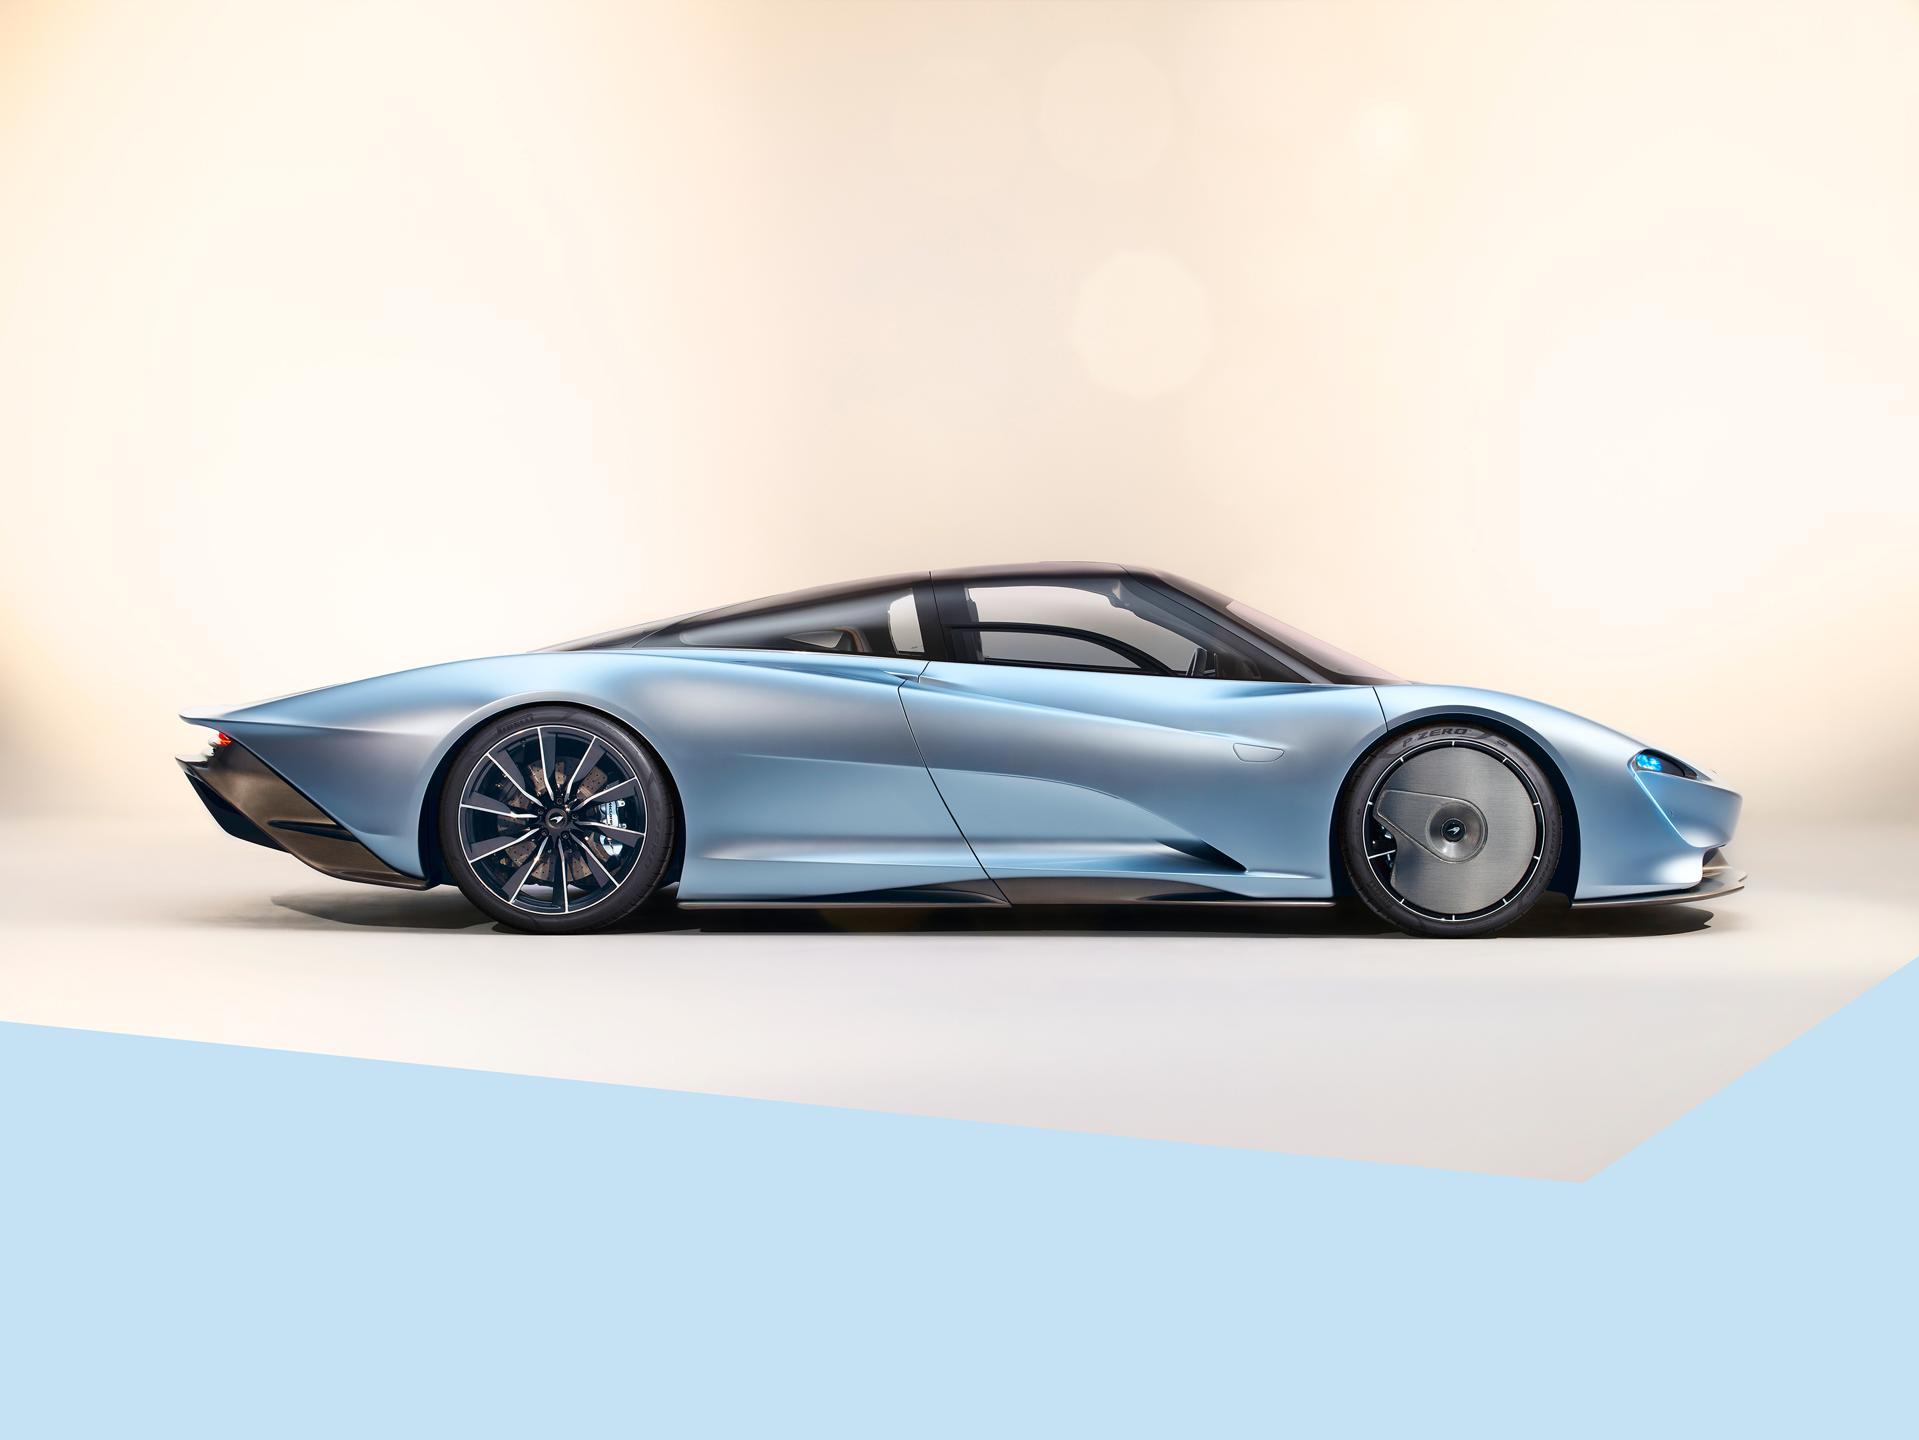 the best new supercars, hypercars and sports cars from the 2019